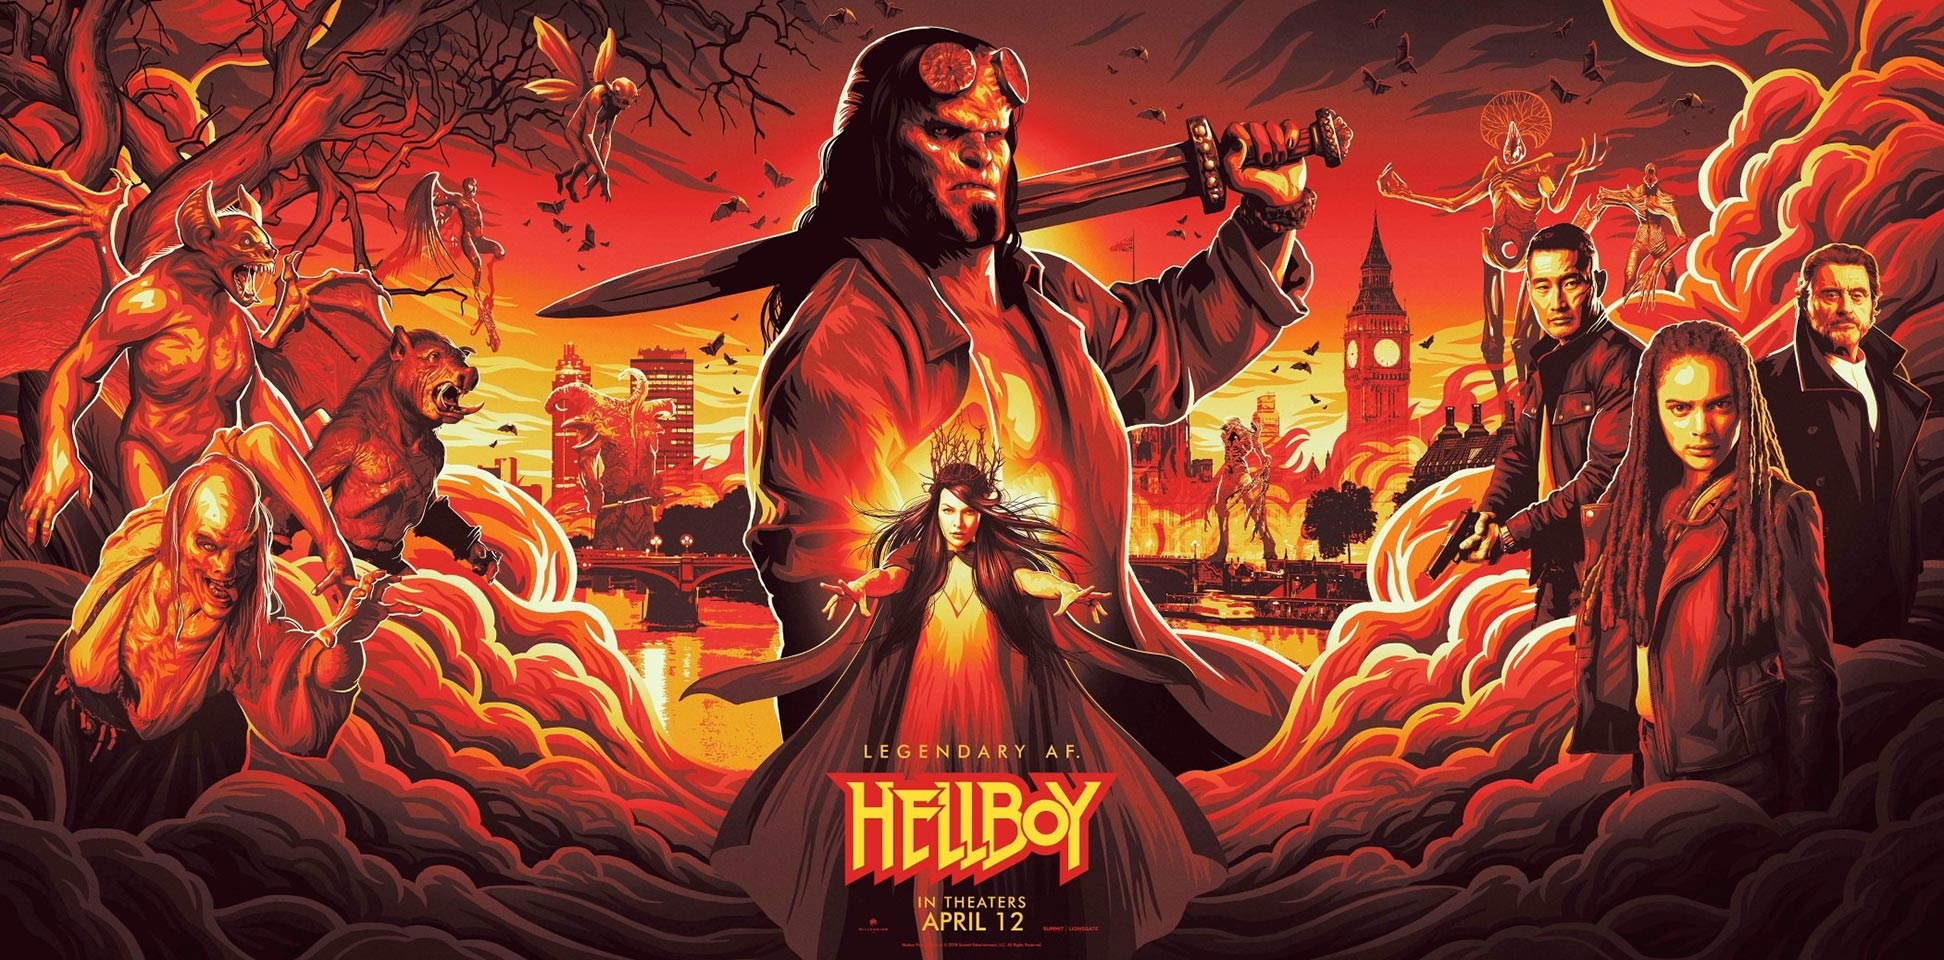 Hellboy Poster #2